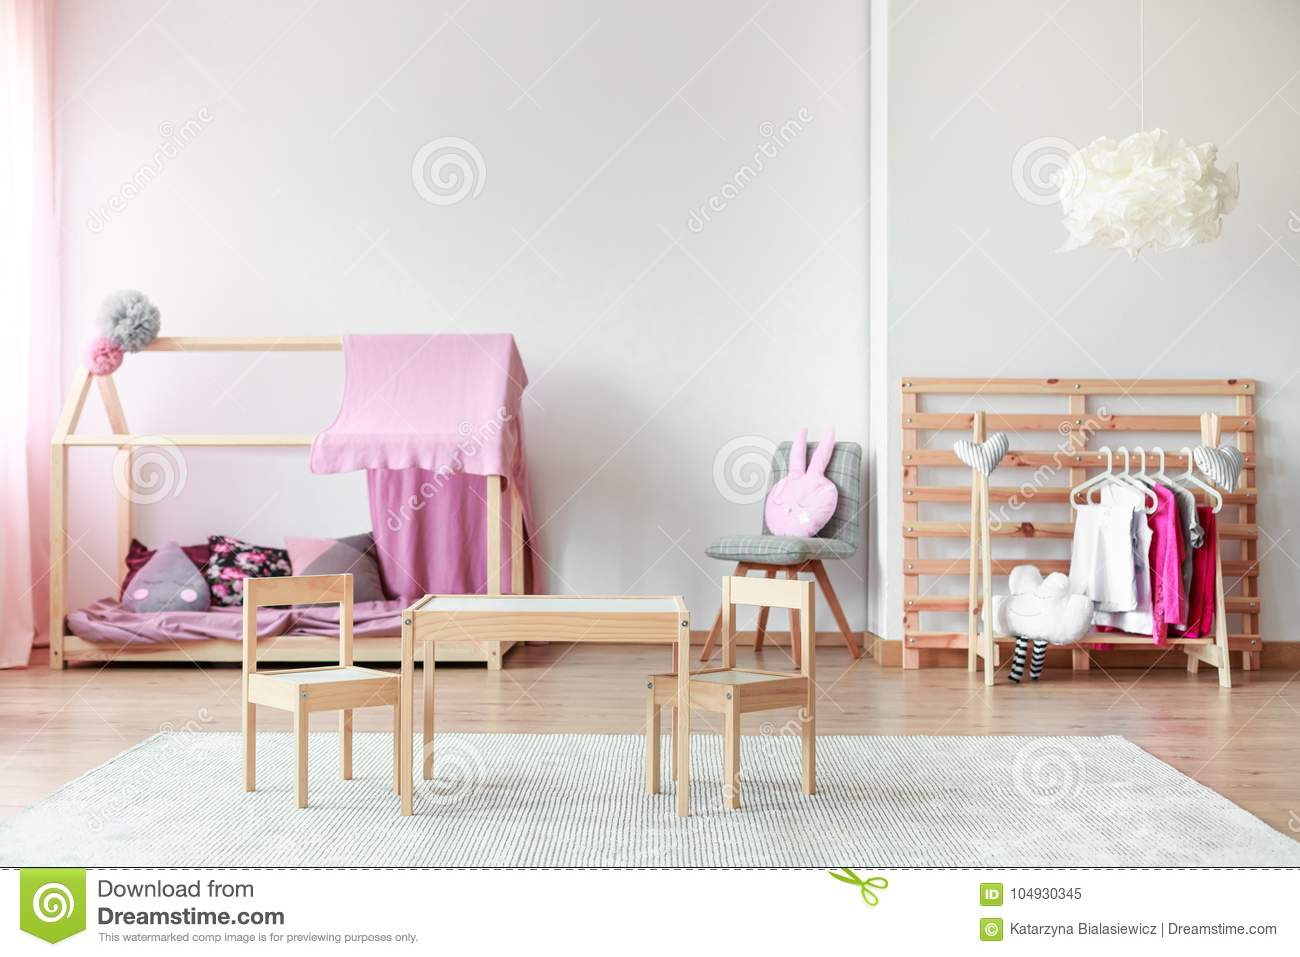 bedroom chair for clothes floating chairs pool girl s in spacious stock image of child on rack with wooden at table and handmade bed